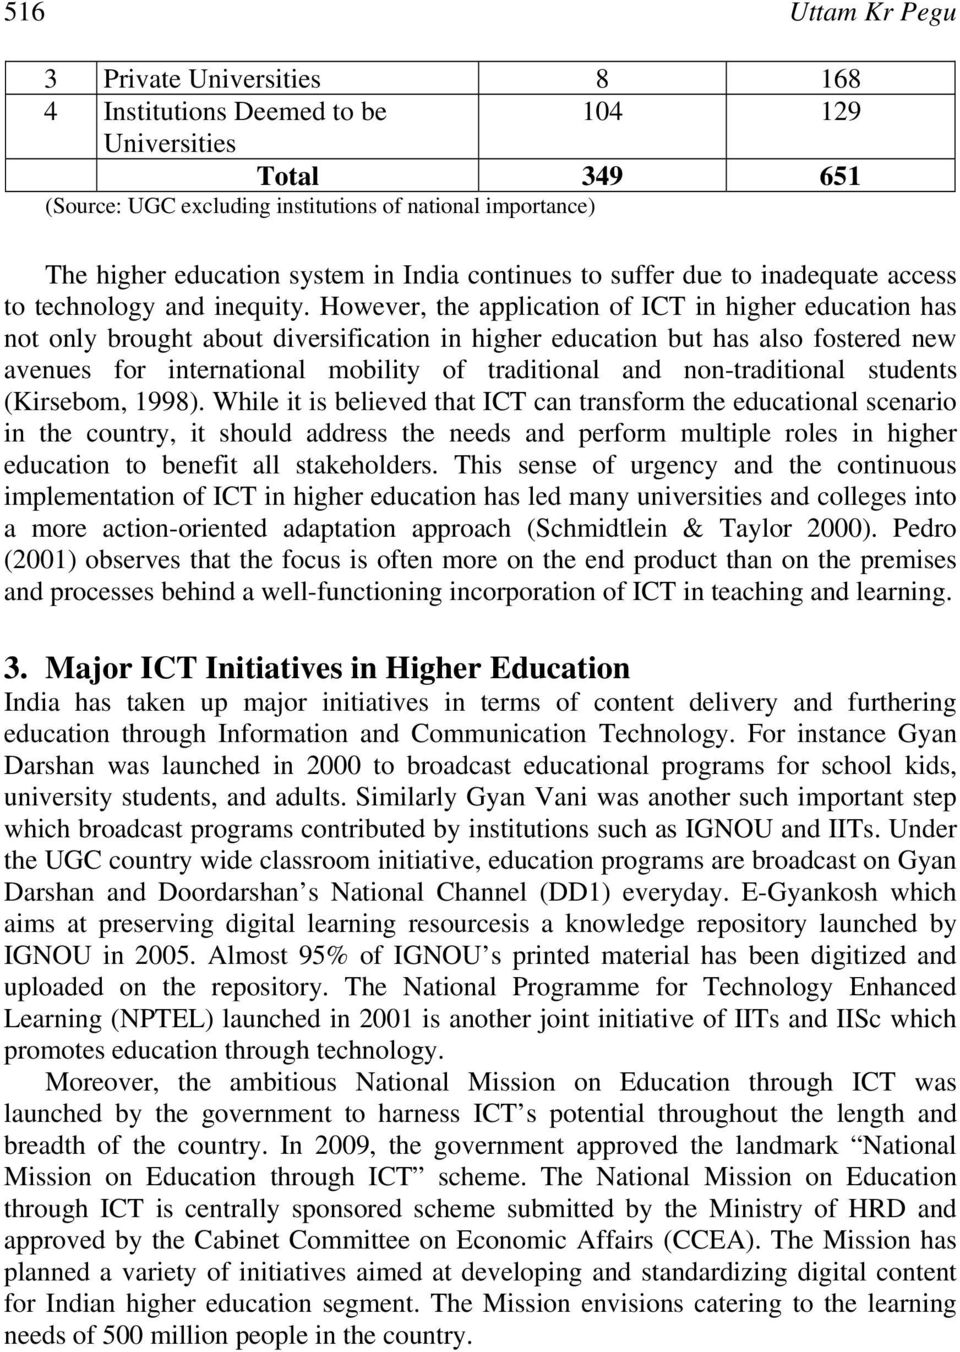 However, the application of ICT in higher education has not only brought about diversification in higher education but has also fostered new avenues for international mobility of traditional and